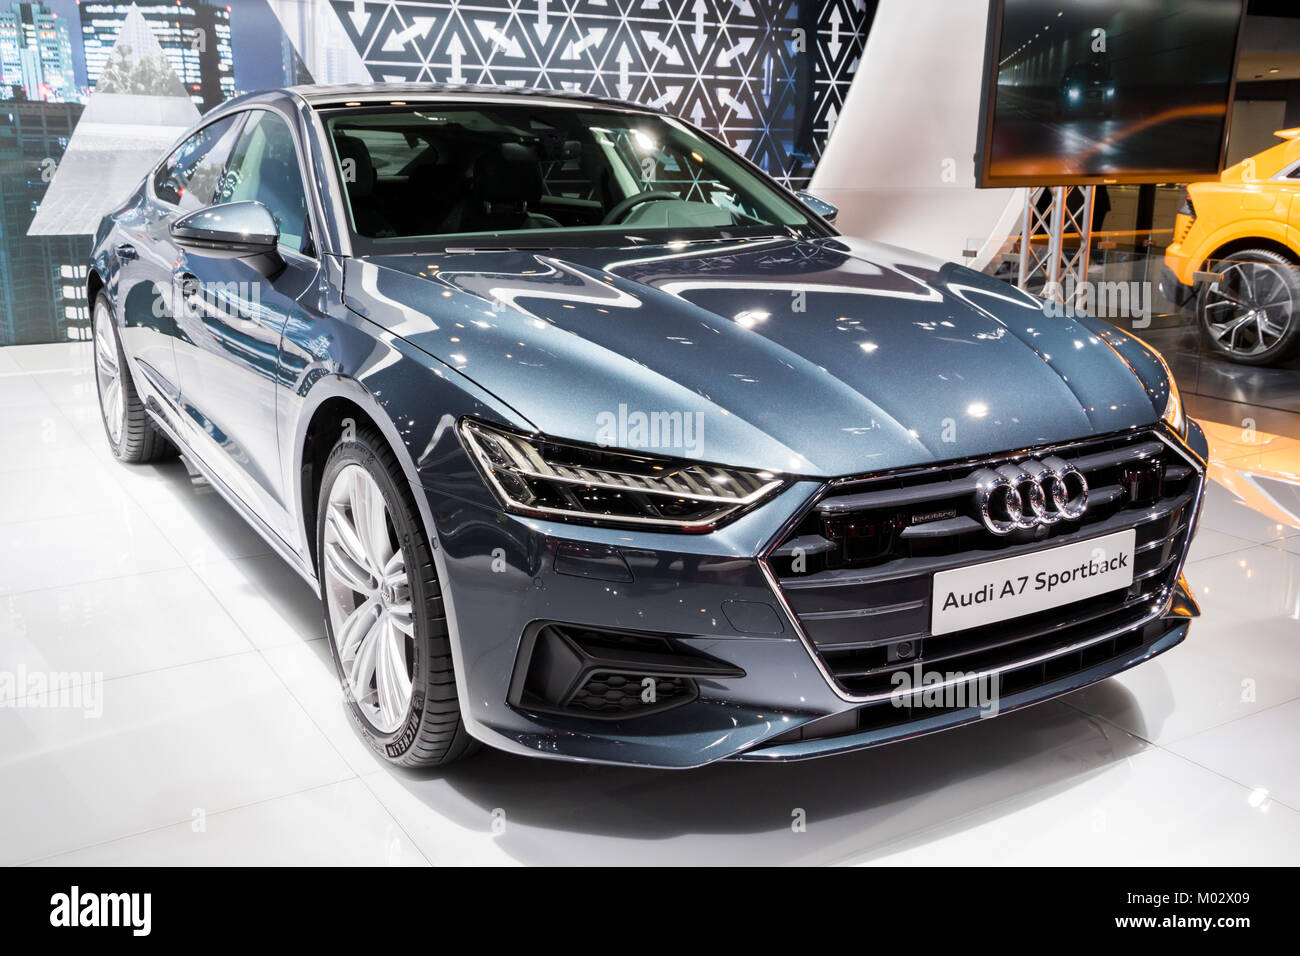 BRUSSELS   JAN 10, 2018: New 2018 Audi A7 Sportback Car Presented At The